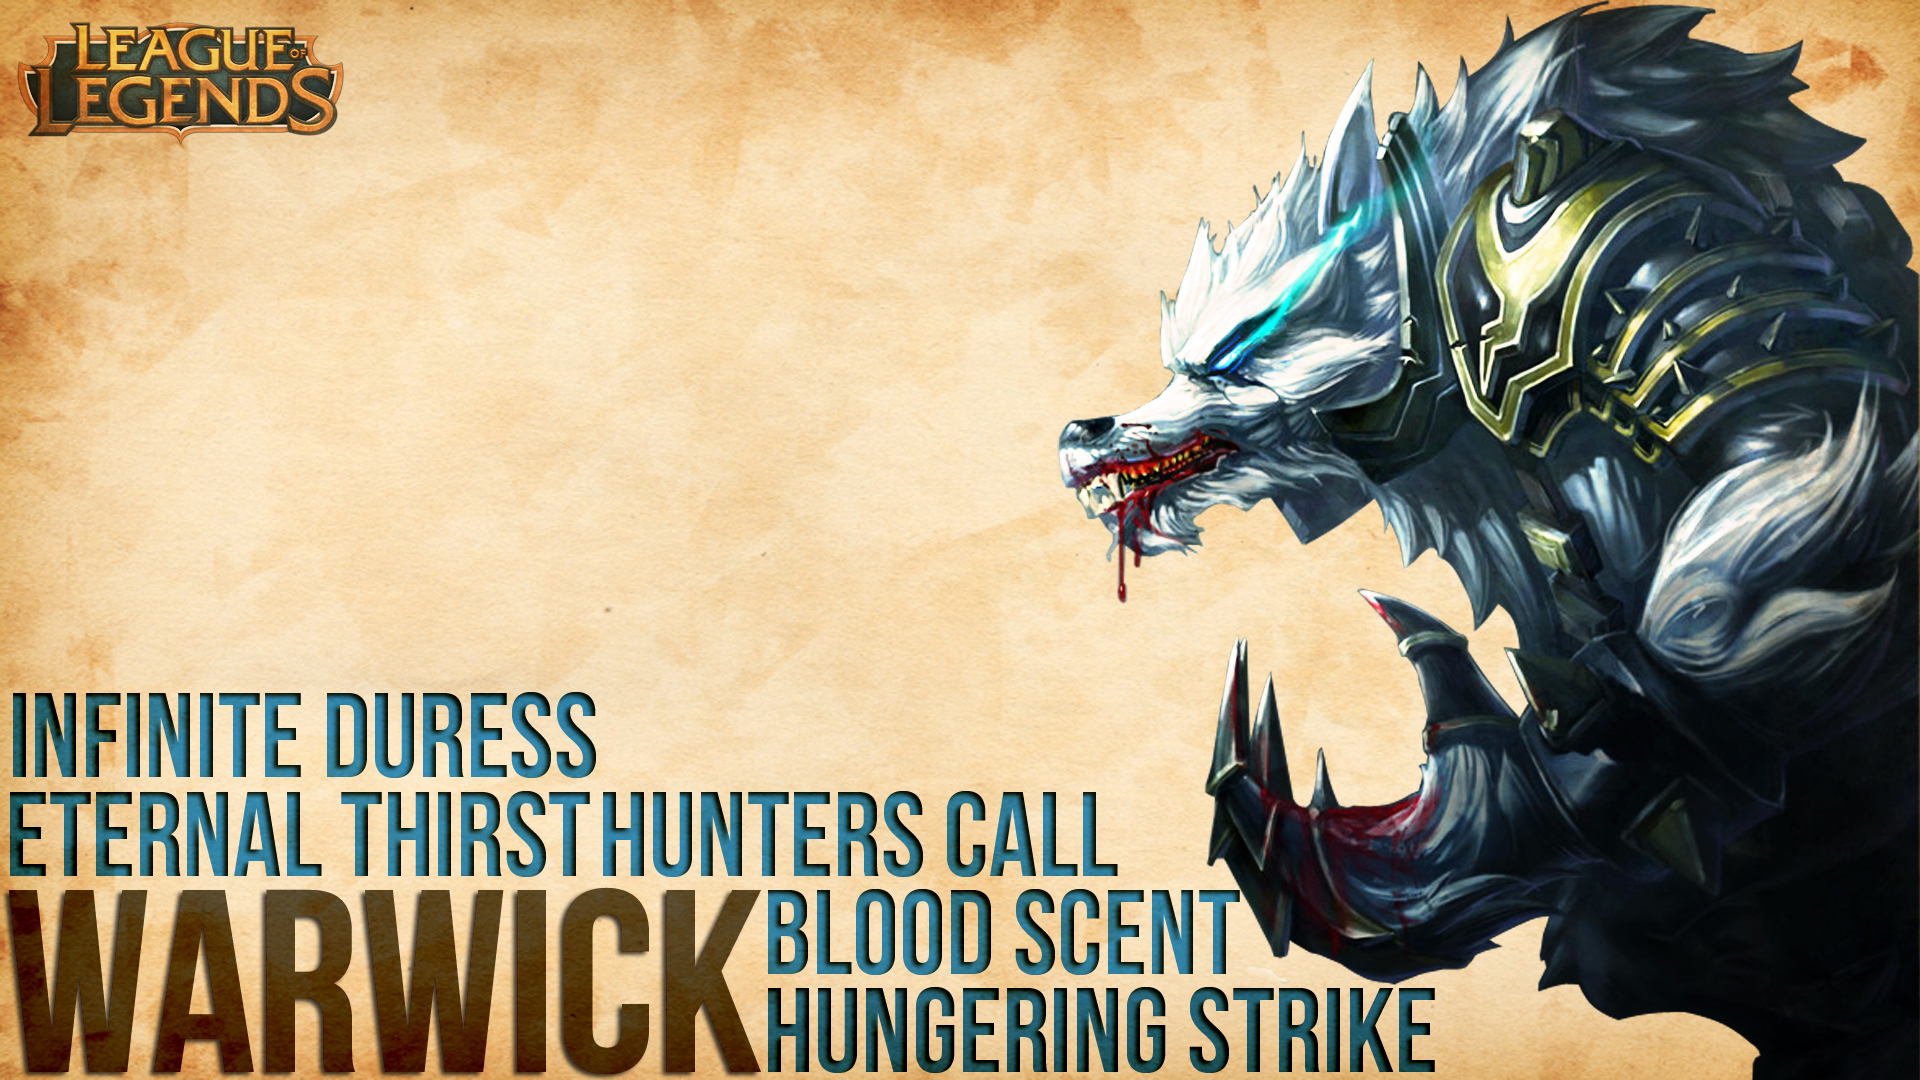 Warwick League Of Legends Wallpaper By Adrigolden On Deviantart